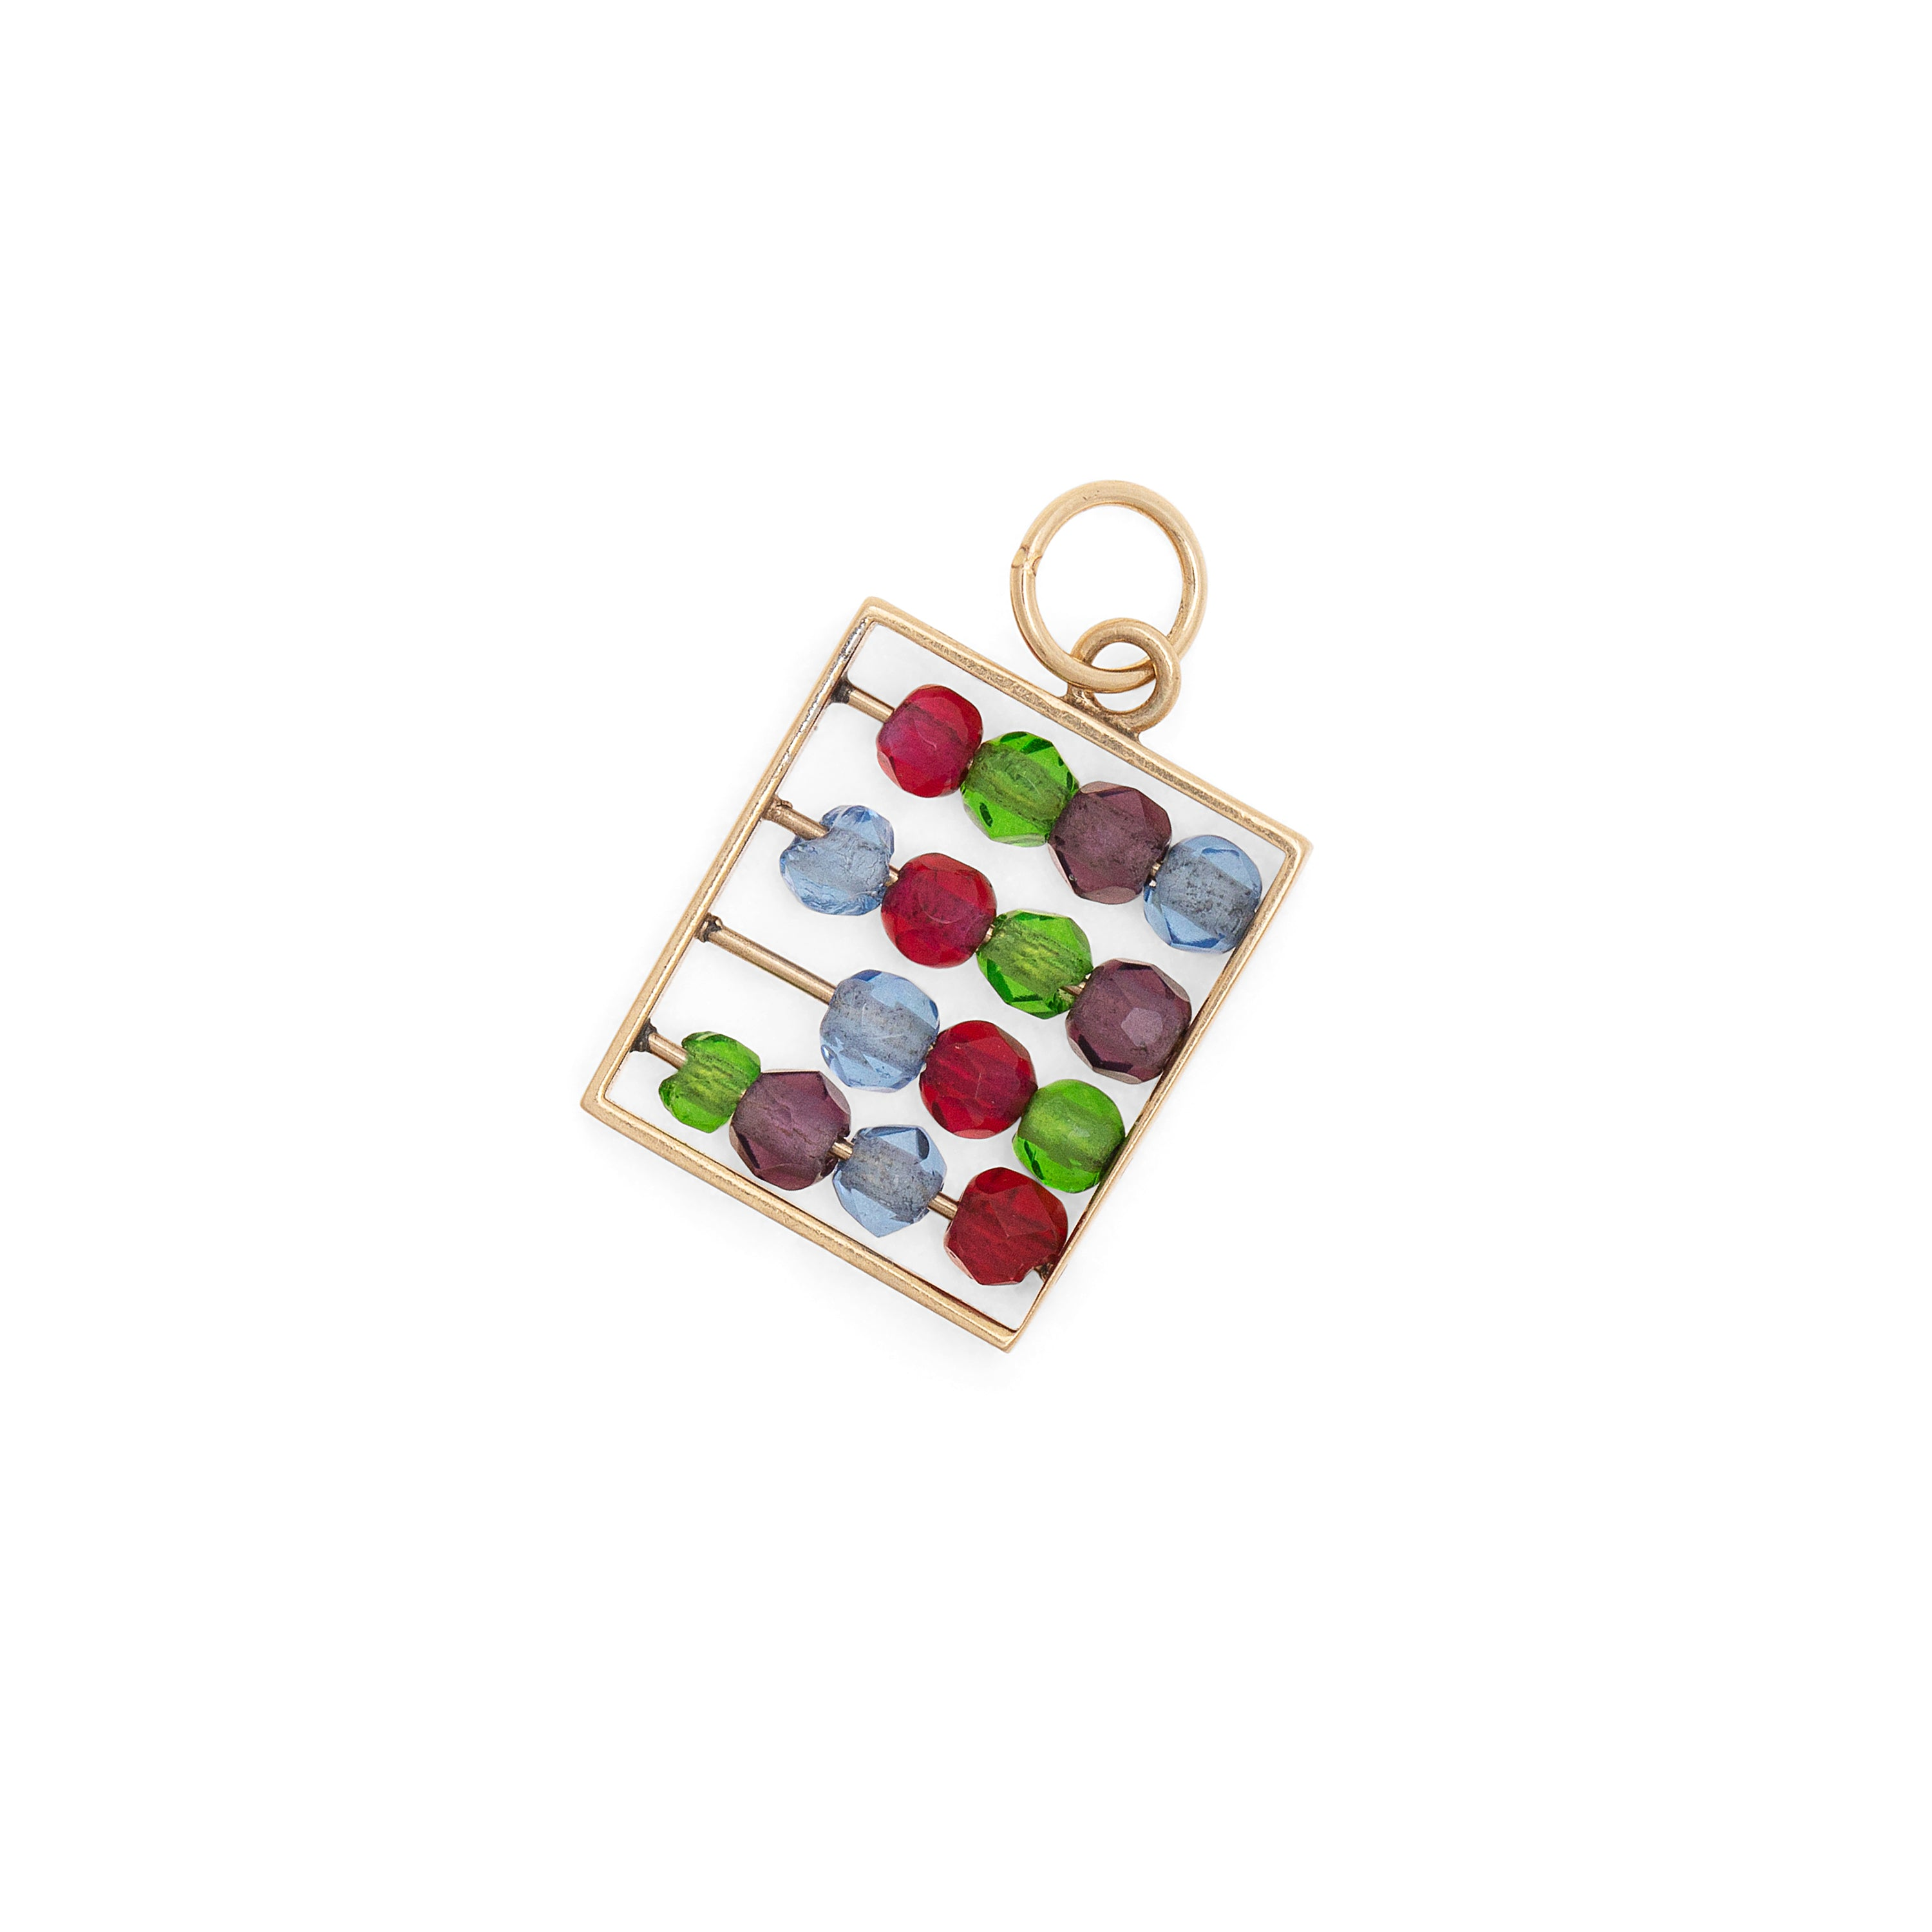 Movable Abacus 14K Gold and Plastic Bead Charm